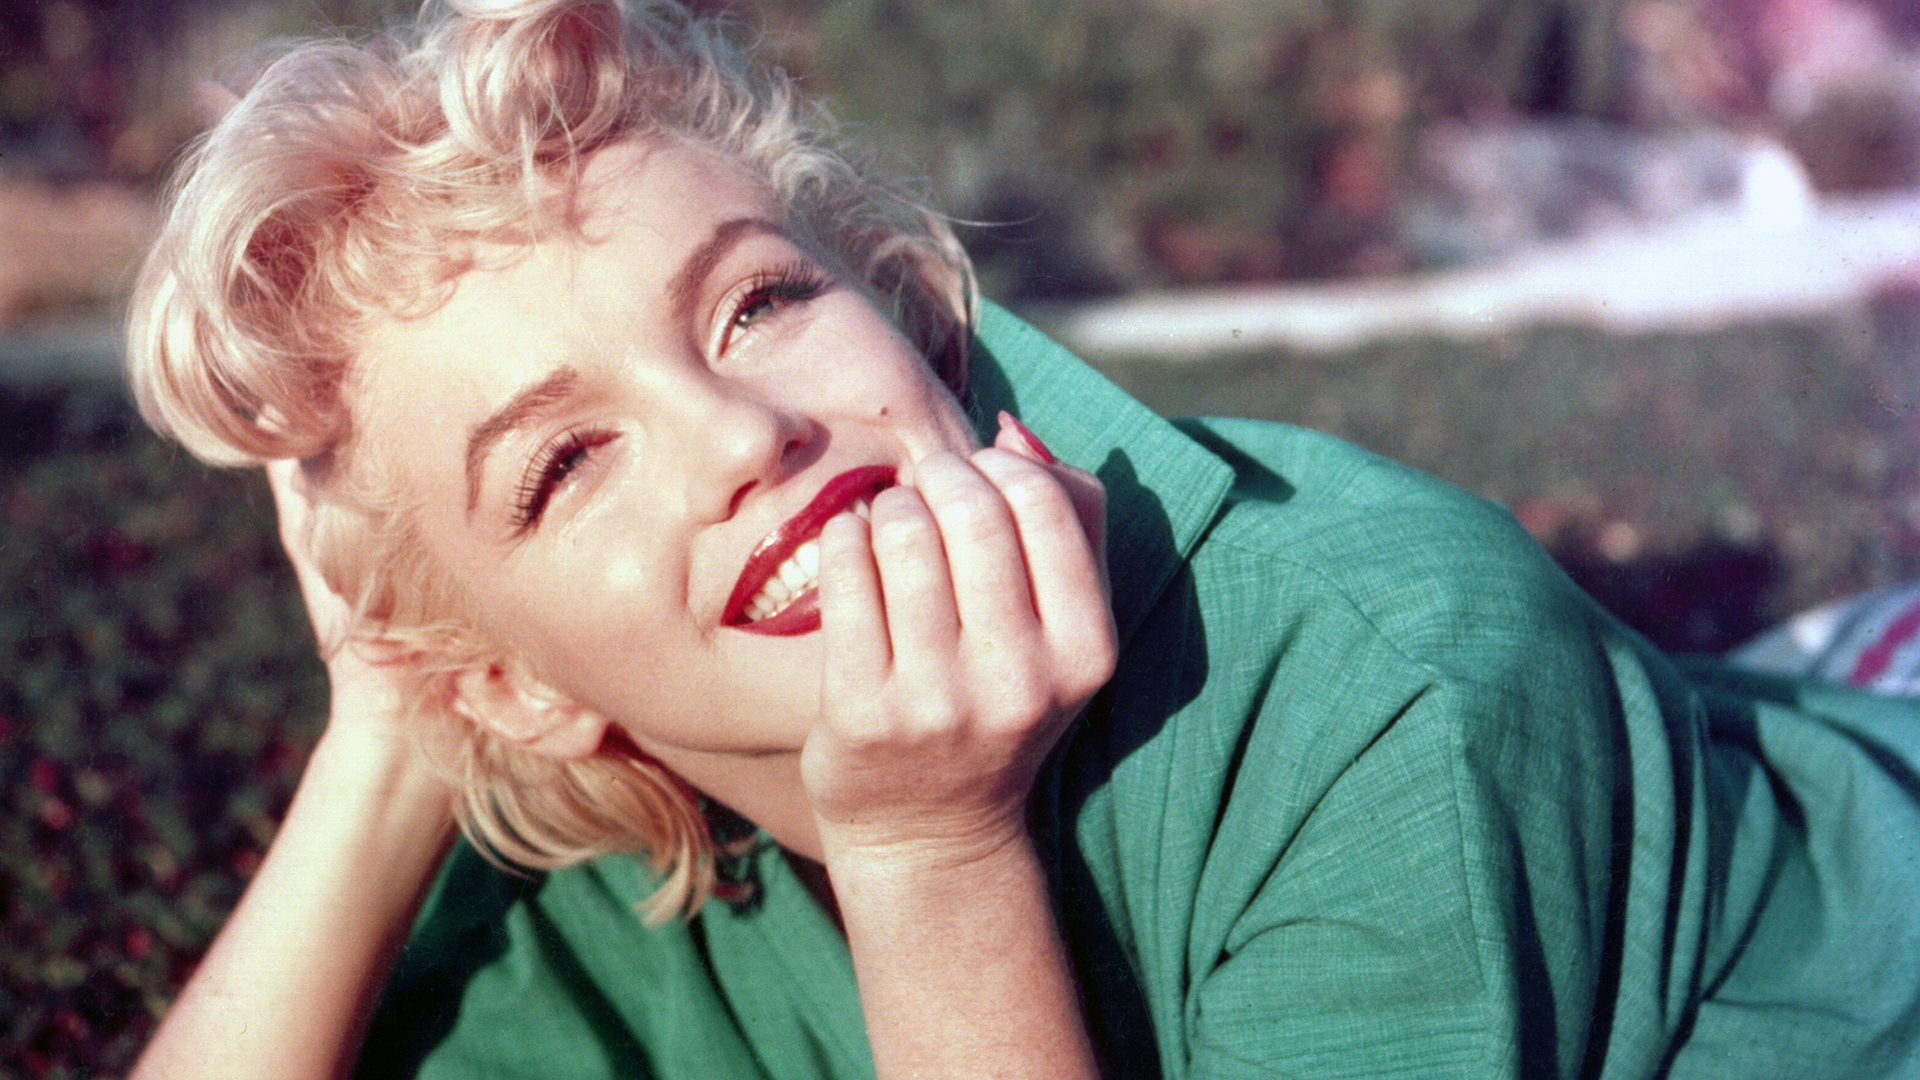 June 1, 1926: Iconic Sex Symbol Marilyn Monroe Was Born